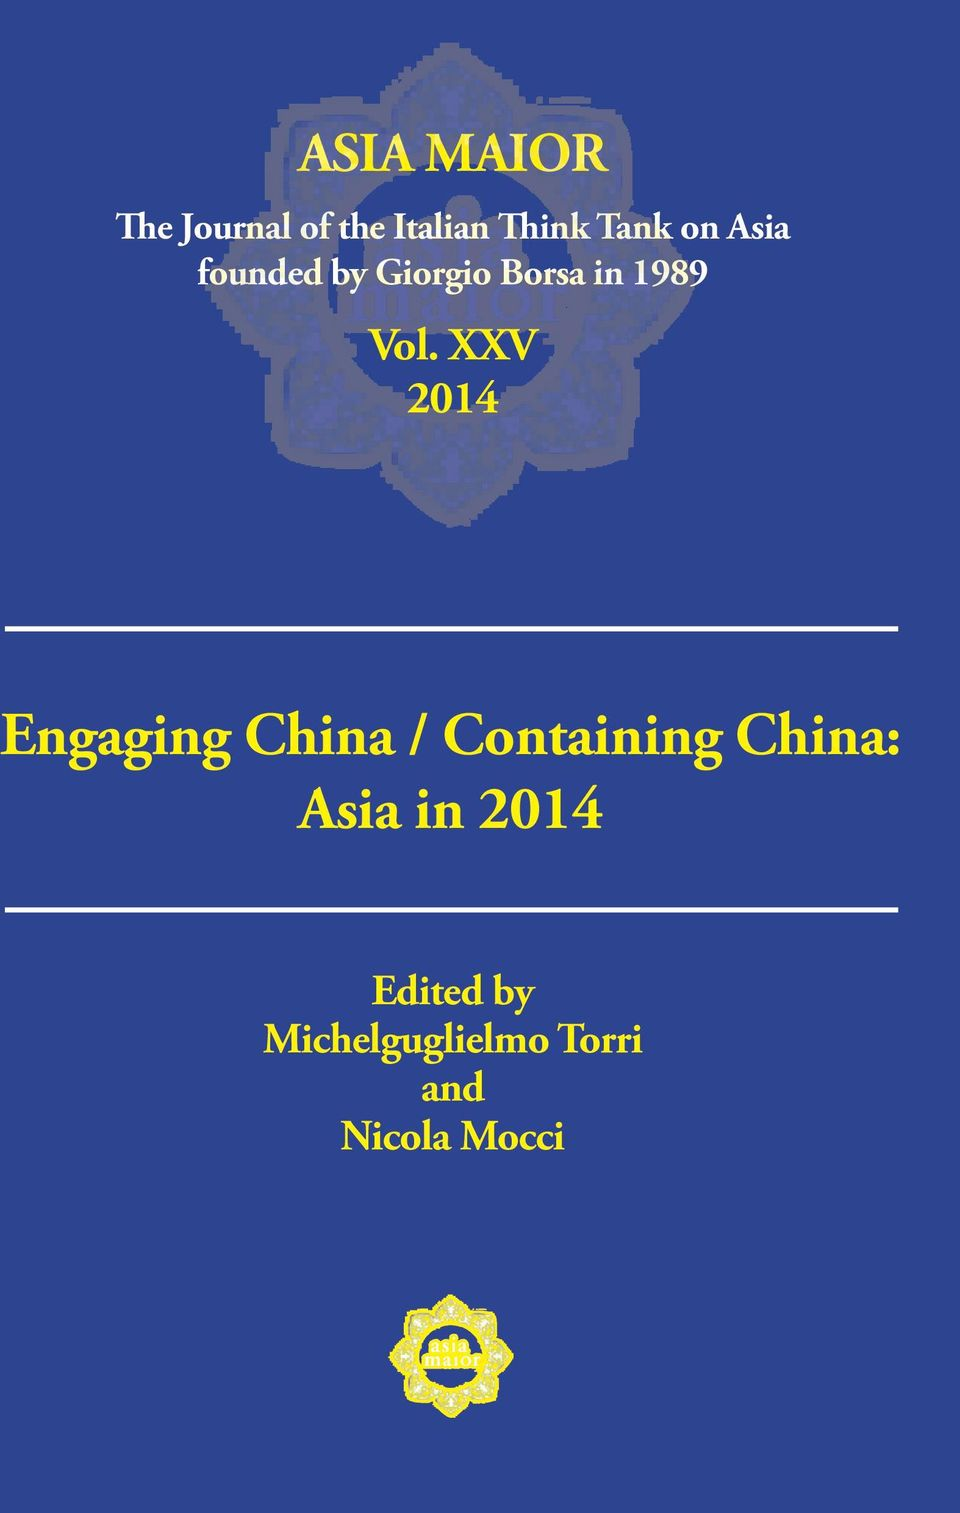 XXV 2014 Engaging China / Containing China: Asia